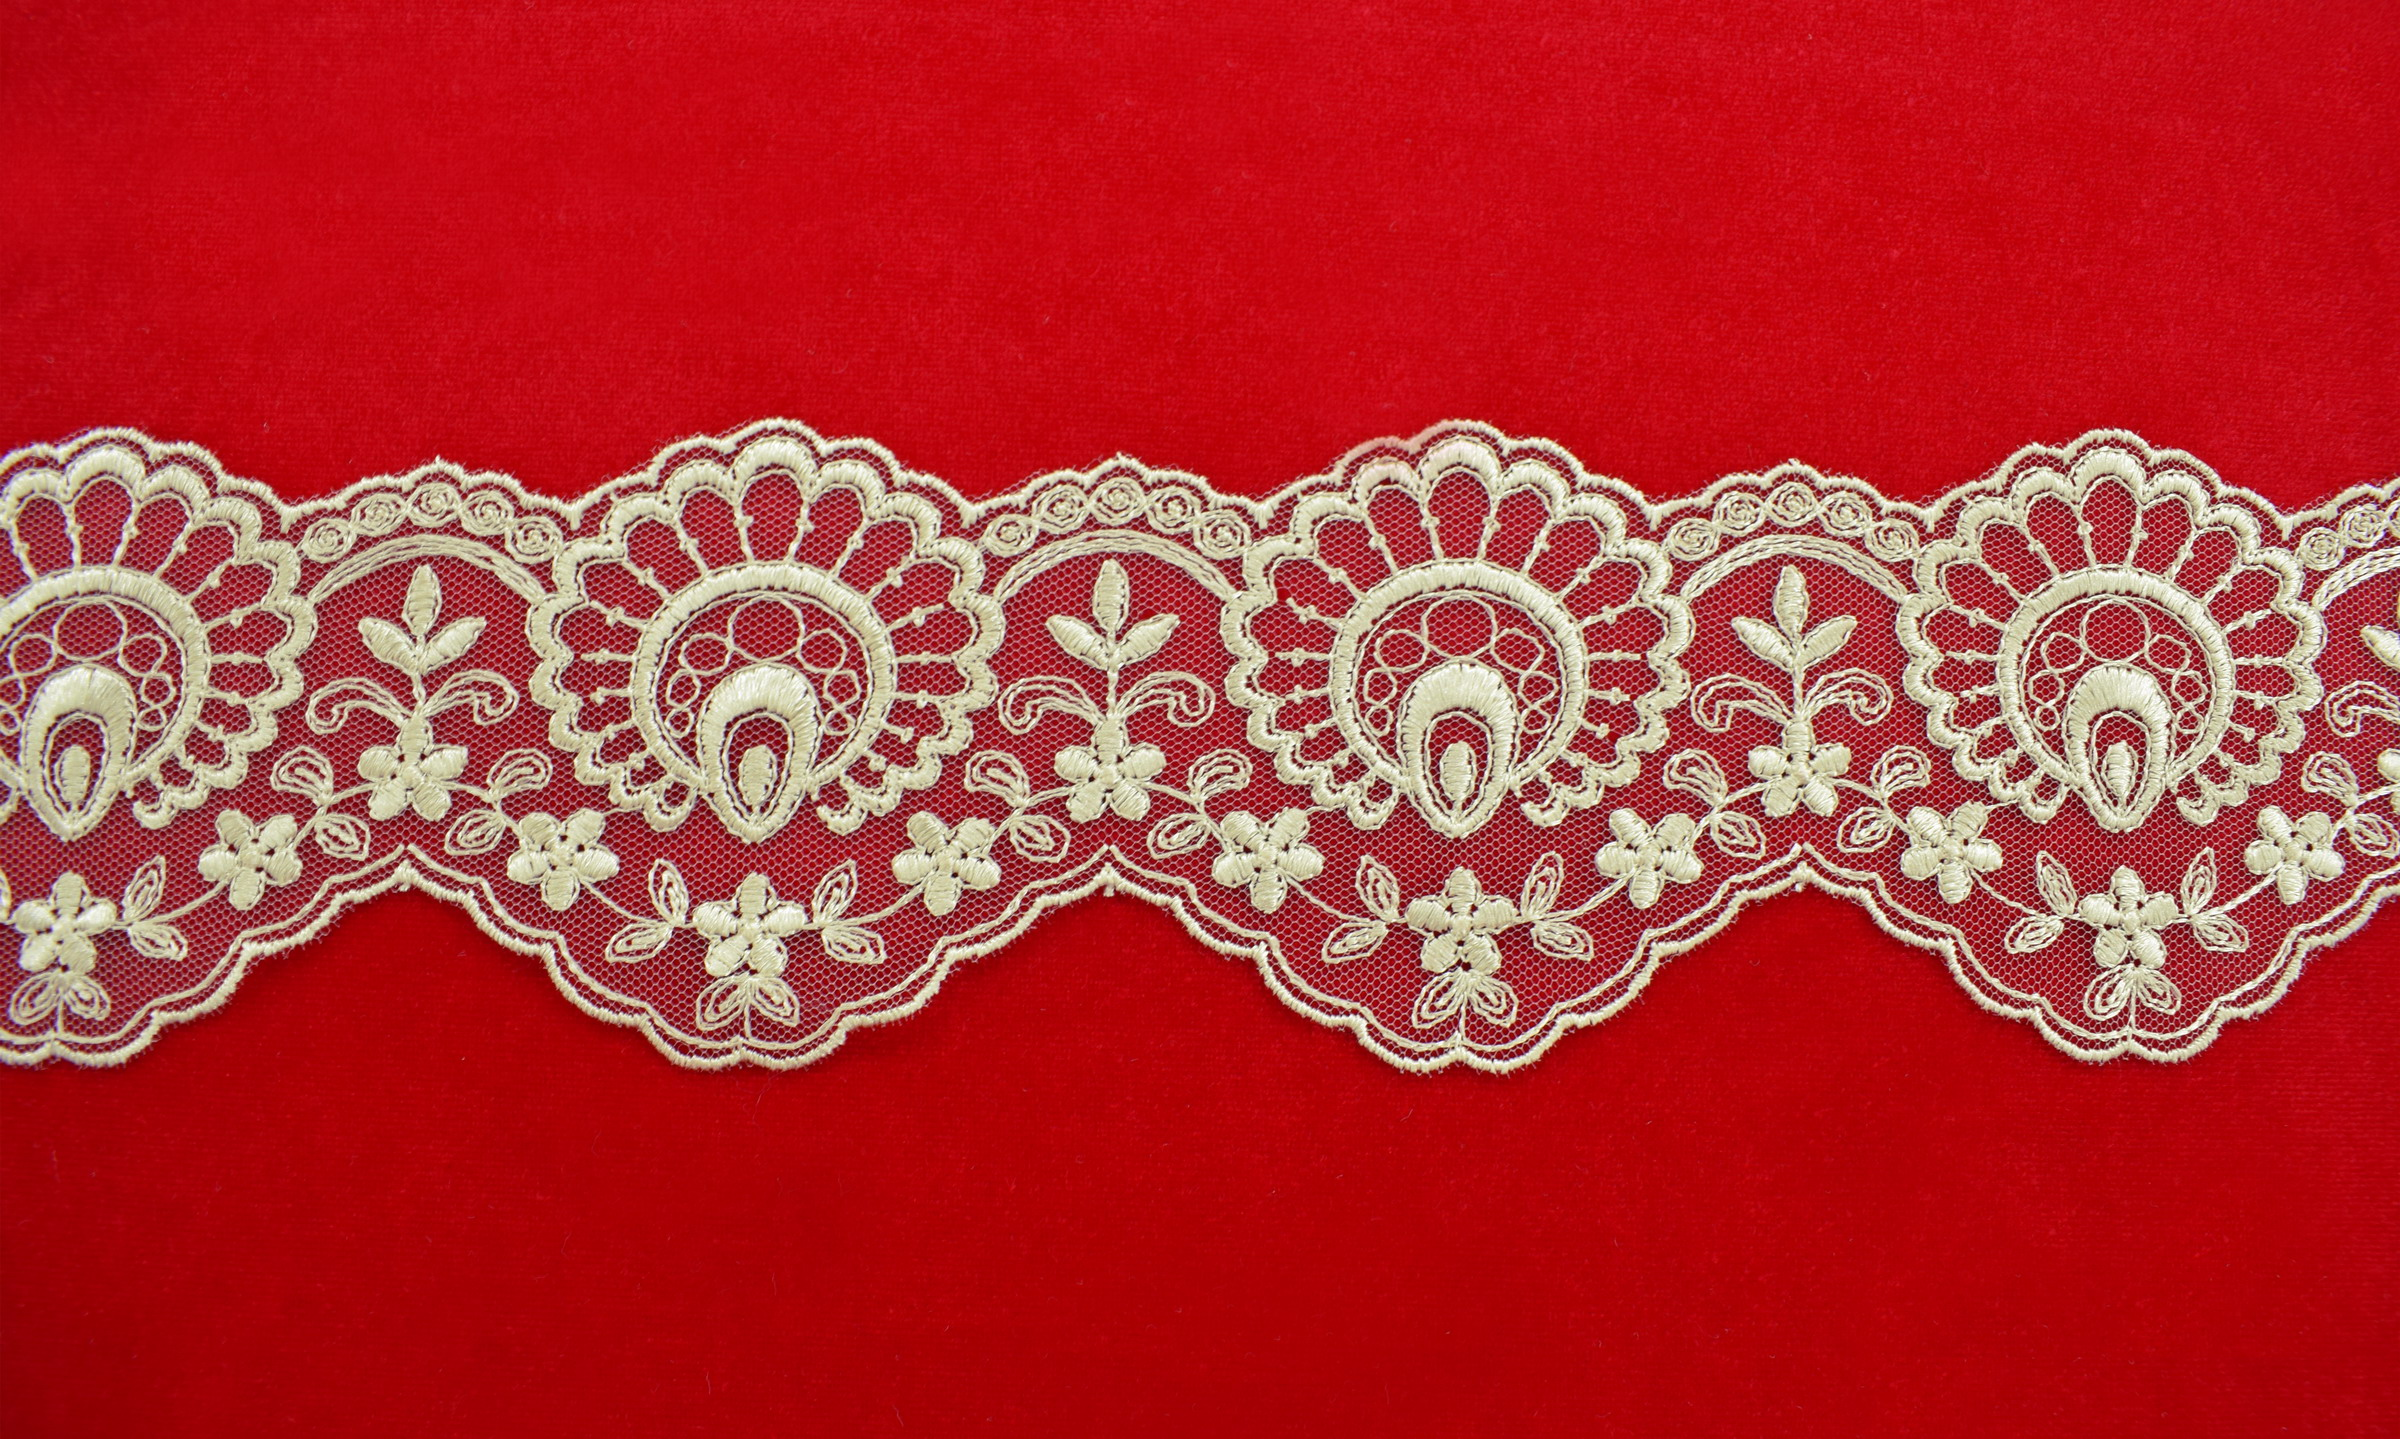 Lace: Not embroidered «F2350»